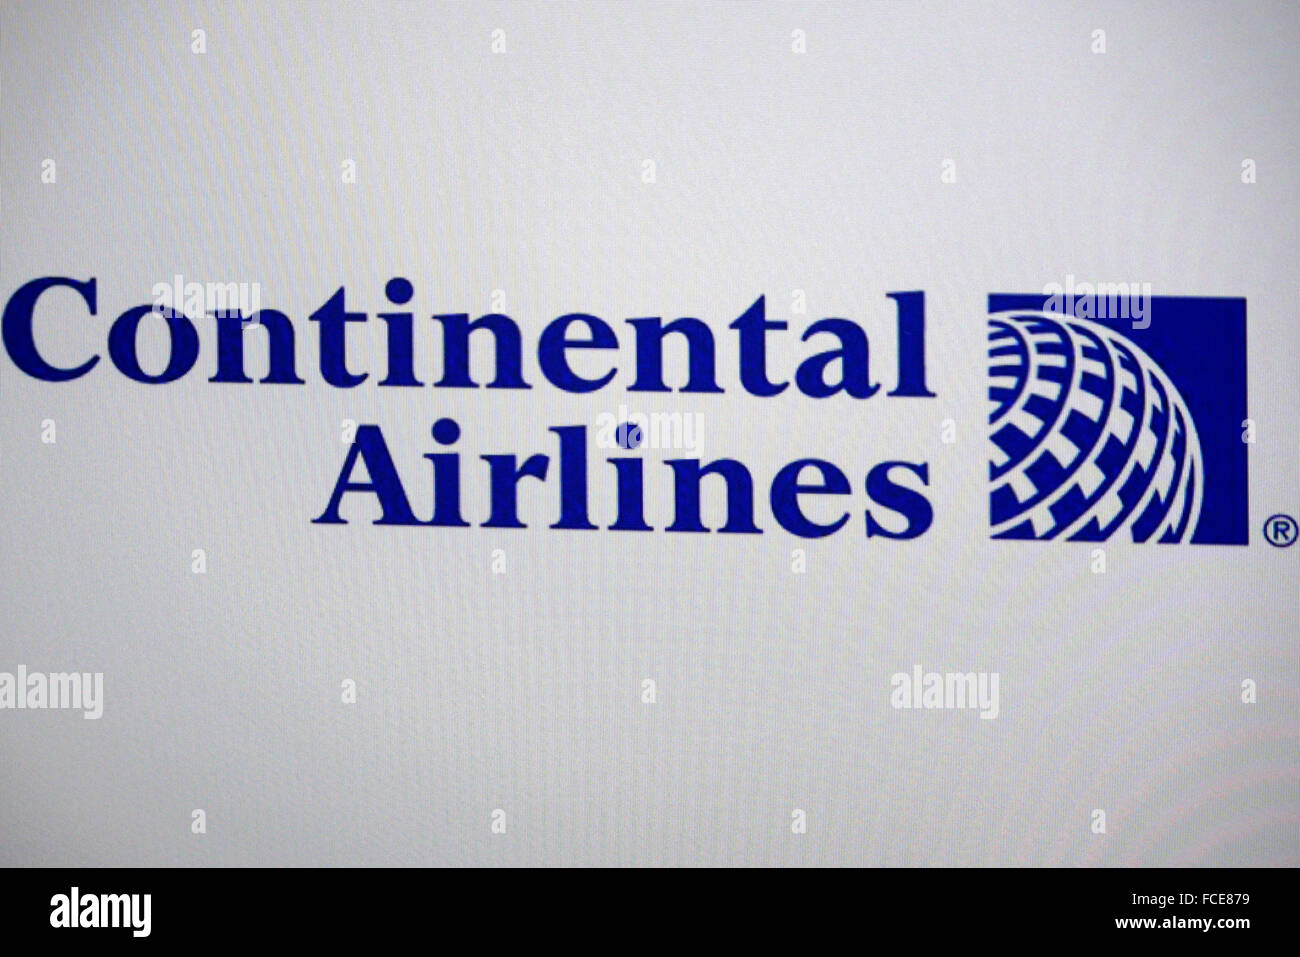 Markenname: 'Continental Airlines', Berlin. - Stock Image